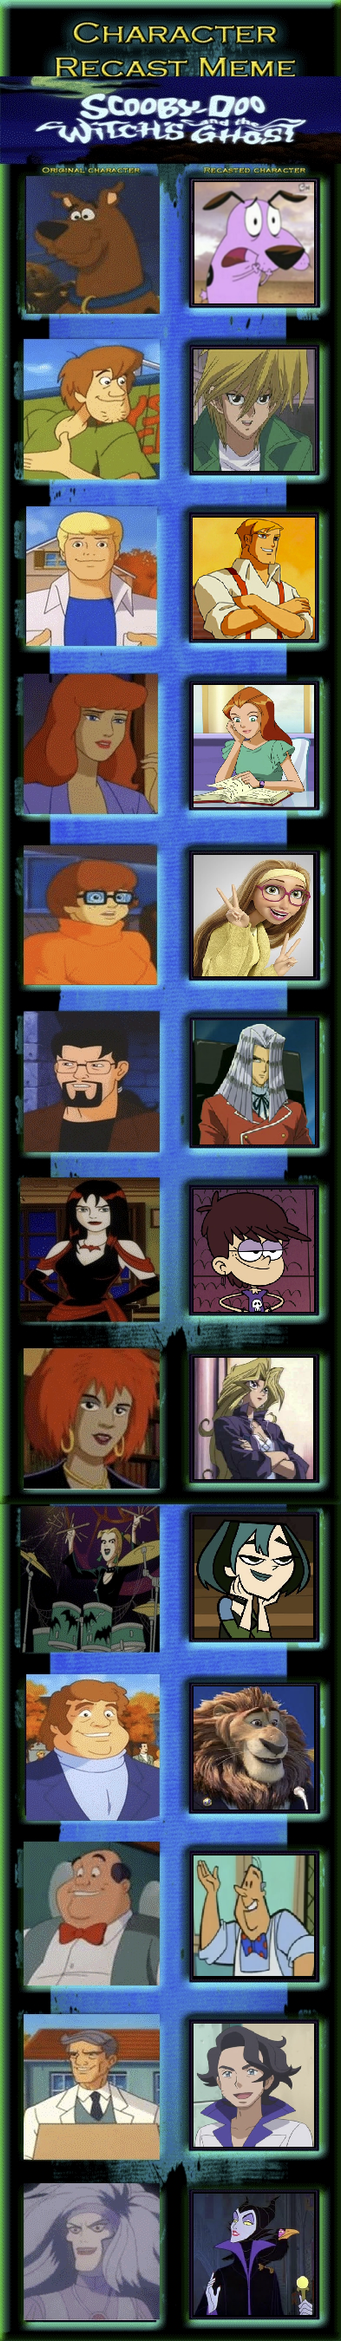 My Scooby Doo and the Witch's Ghost Recast Meme by MarioFanProductions